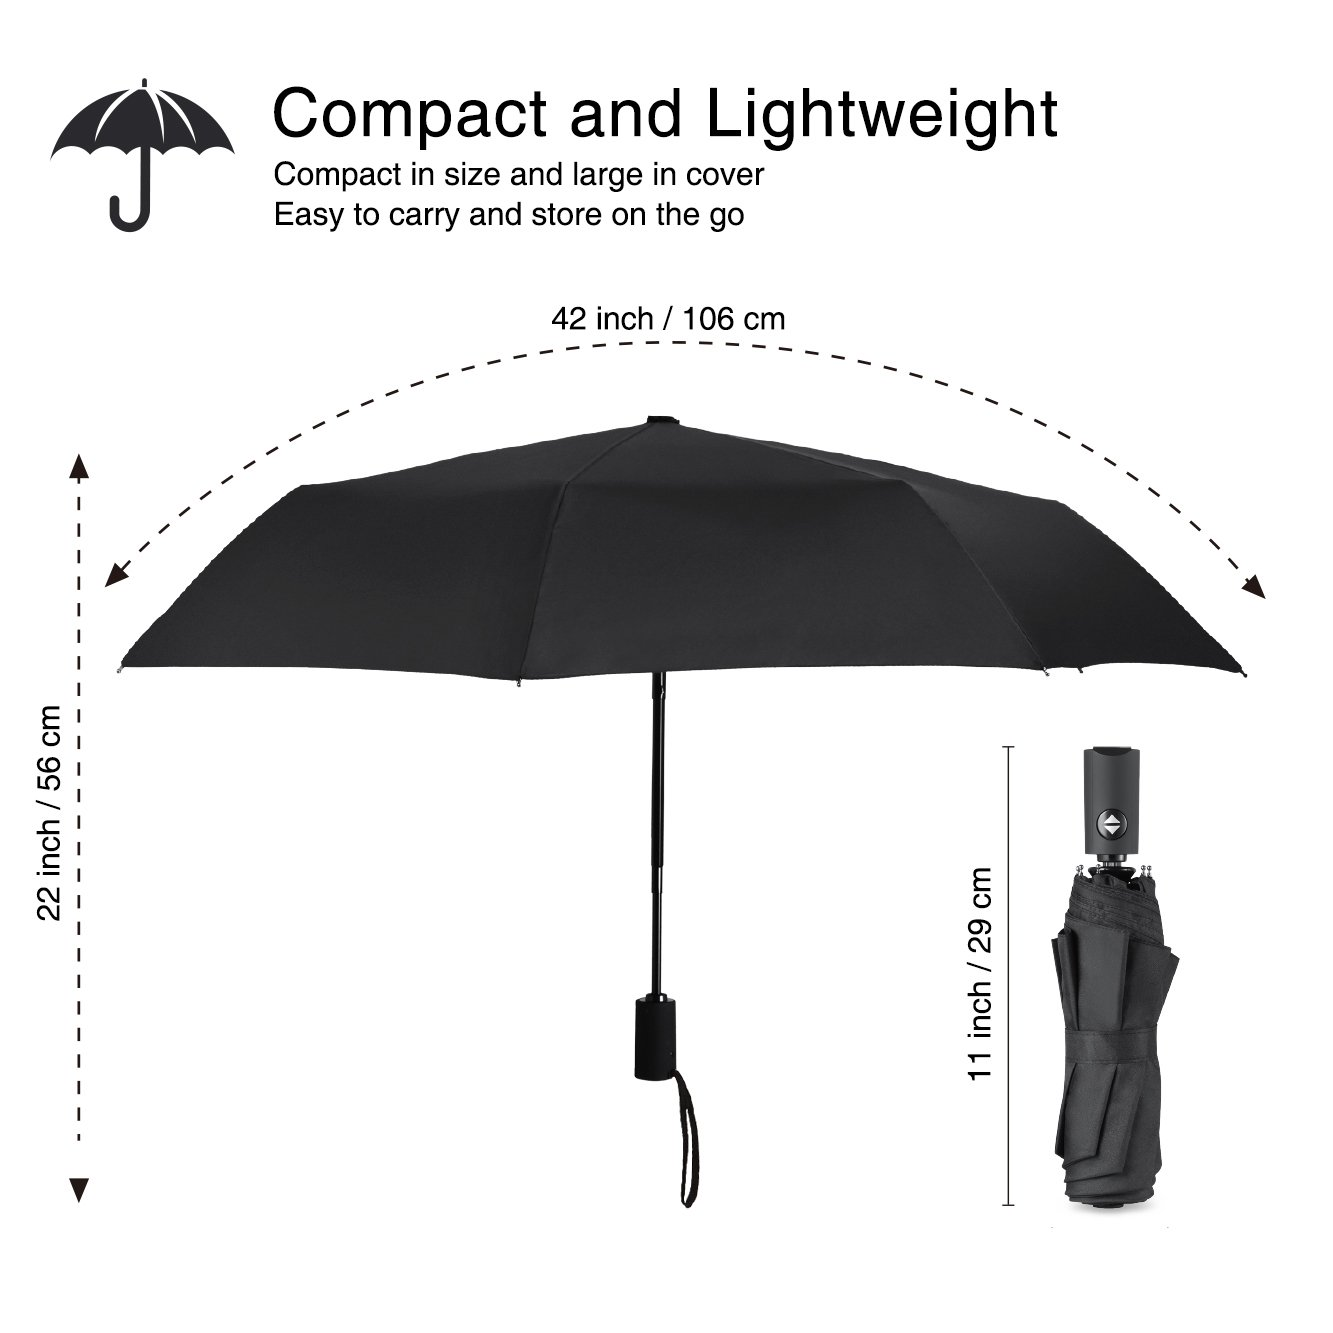 Amazon.com: Plemo Auto Open Close Compact Travel Folding Umbrella with  Anti-Slip Rubberized Grip, Windproof and Waterproof Portable for Business  and Travel ...